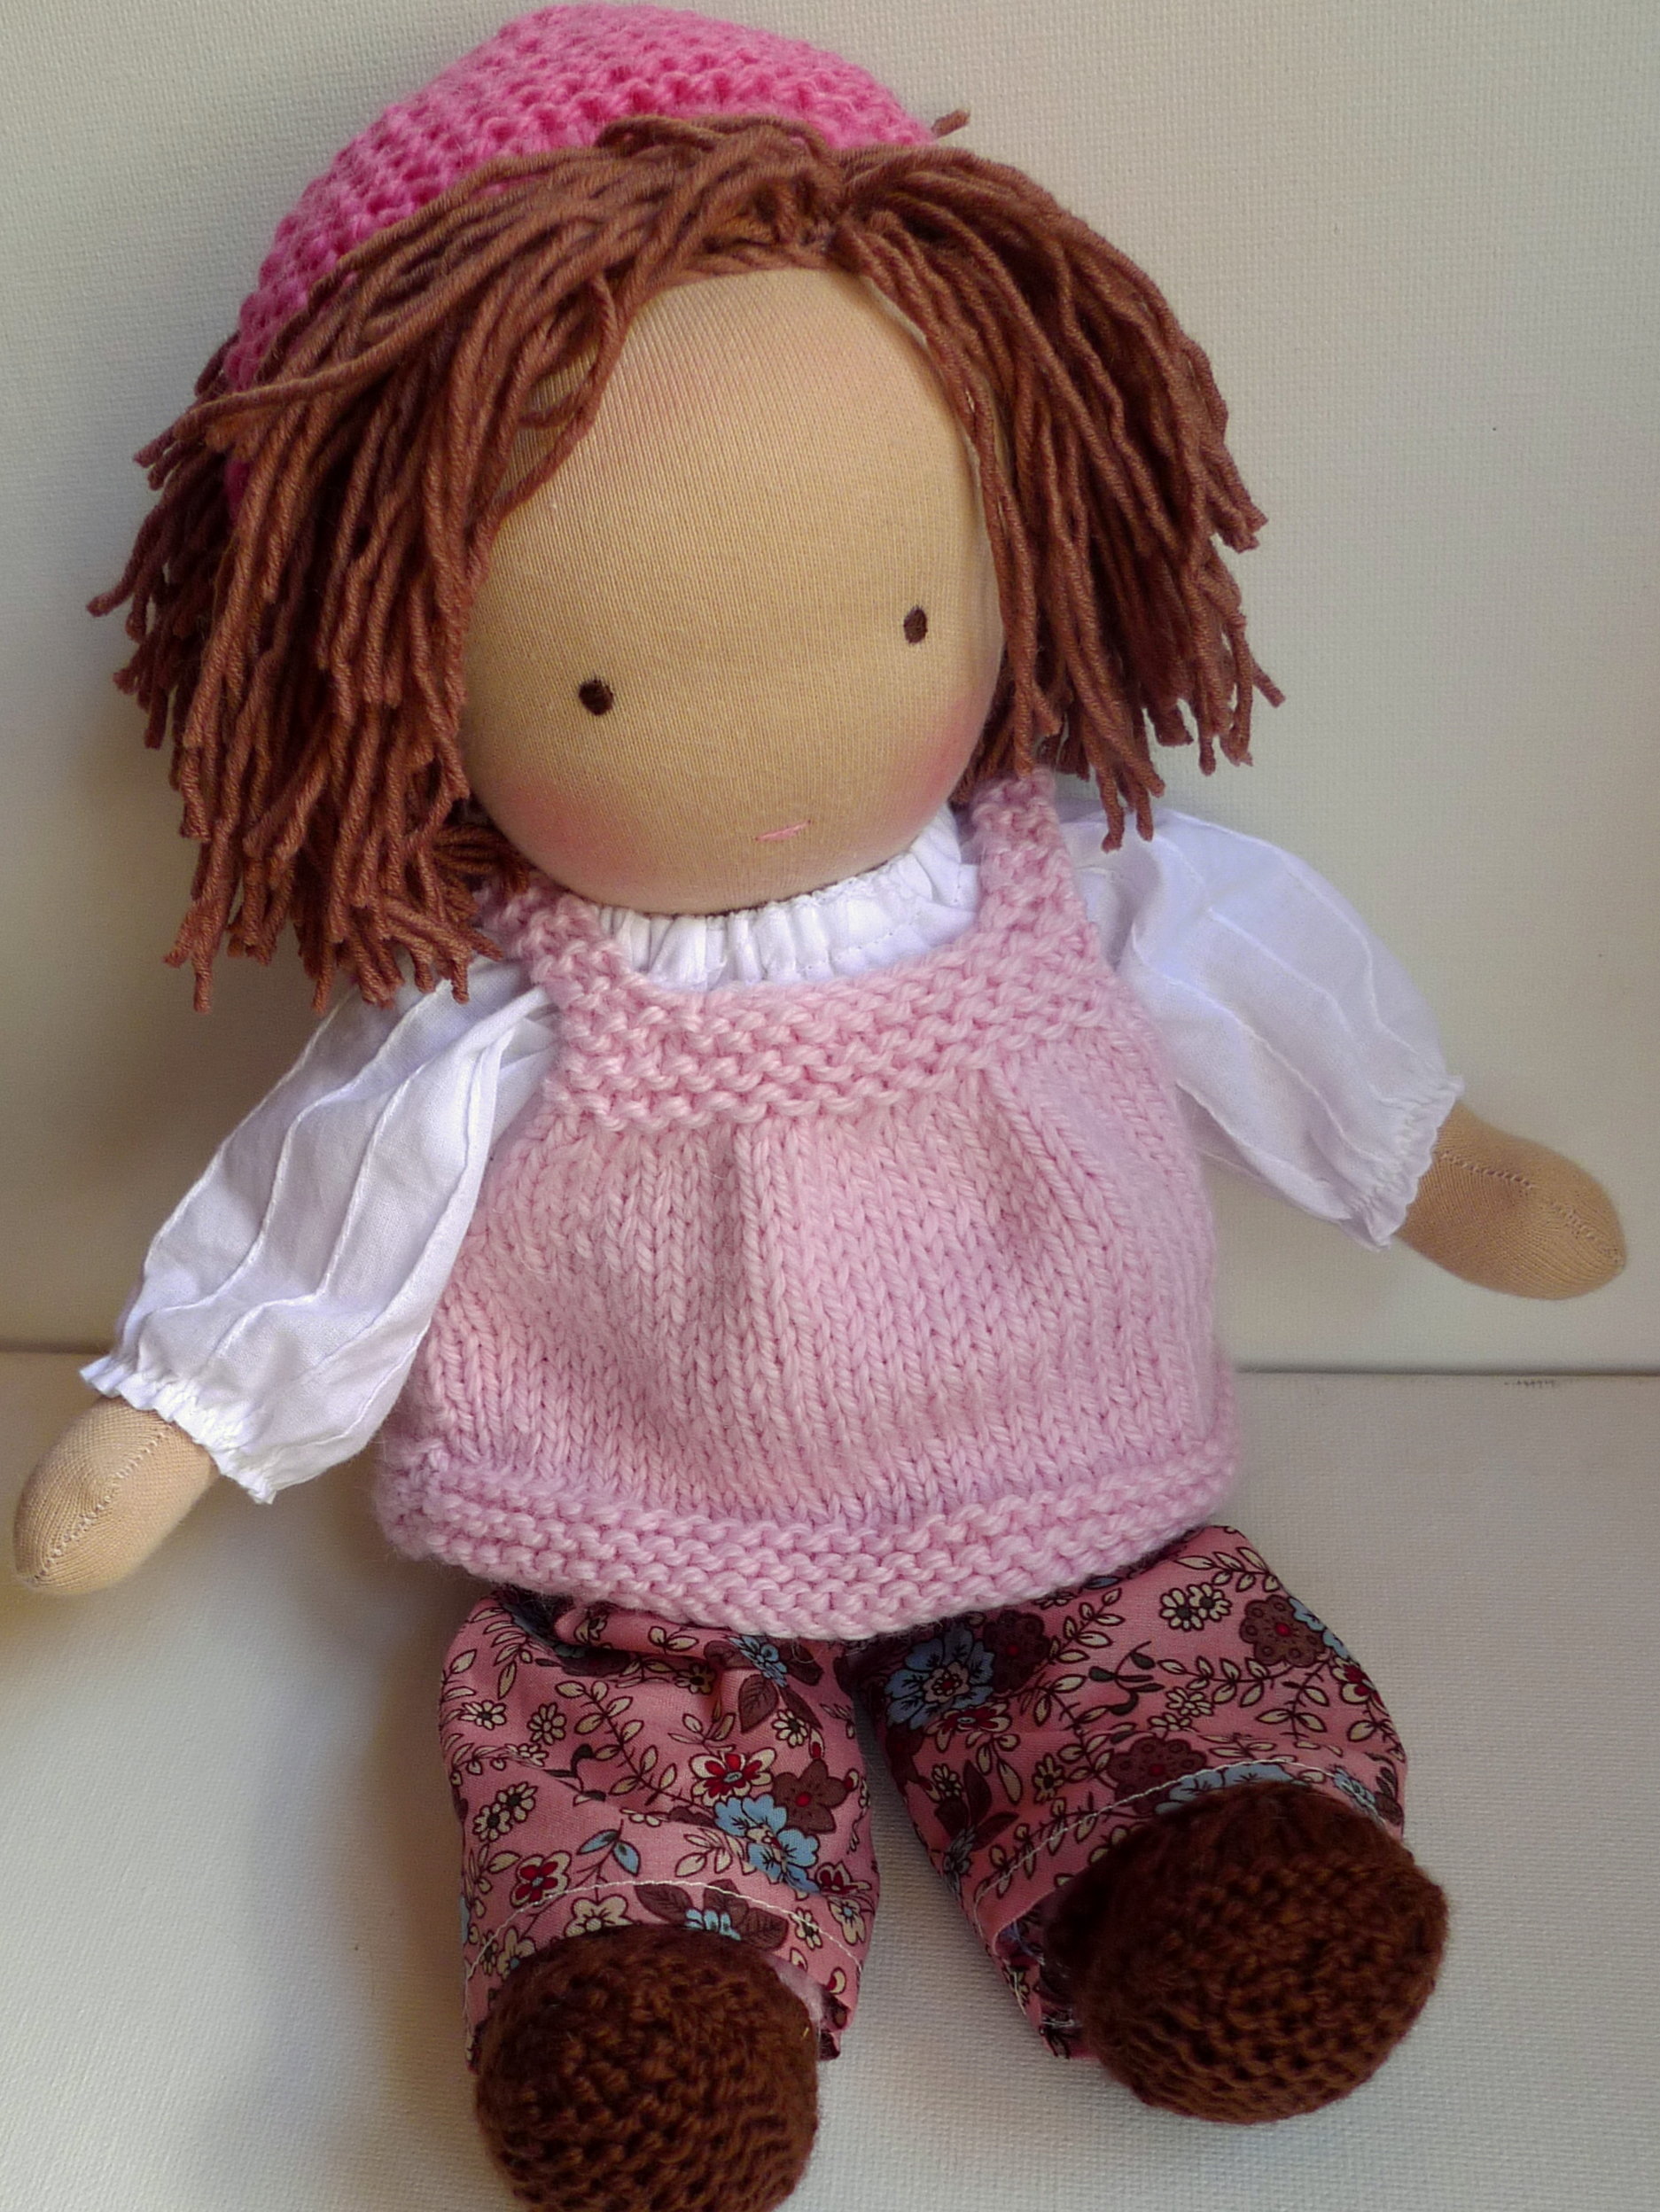 spring outfit -  blouse, trousers, knitted pinafore, headscarf and shoes